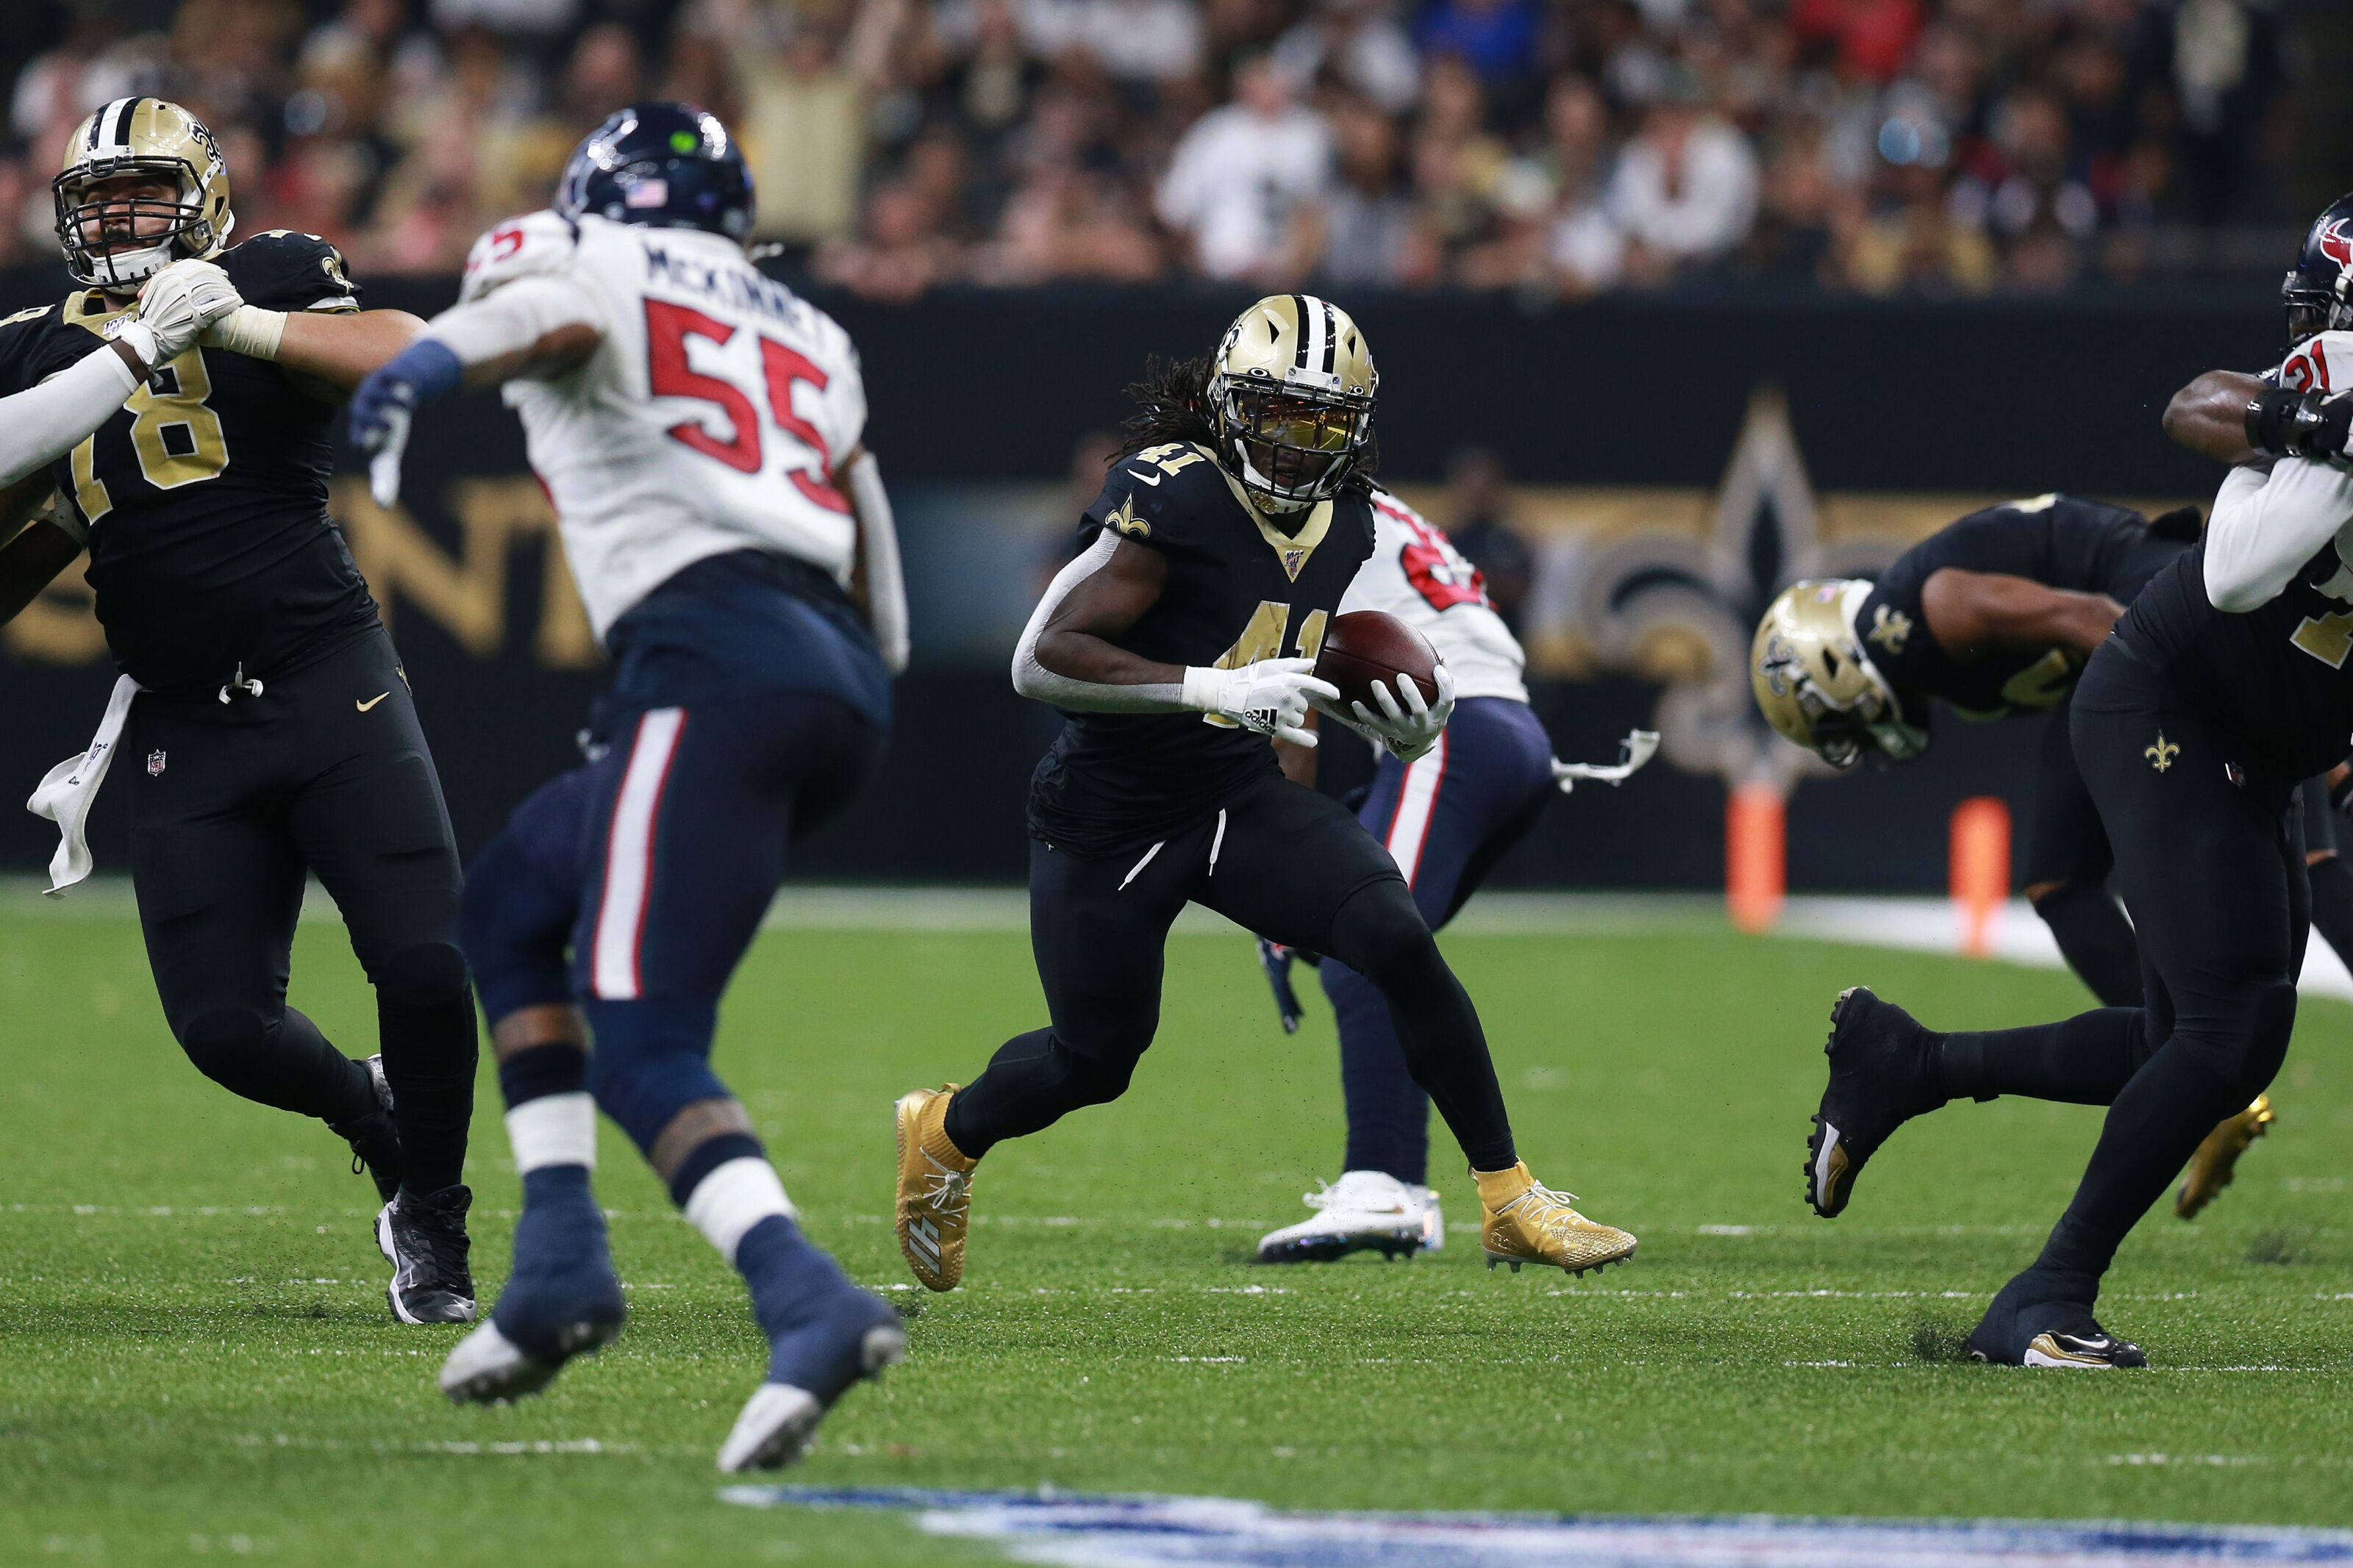 Wil Lutz is clutch in Saints come from behind win over Texans